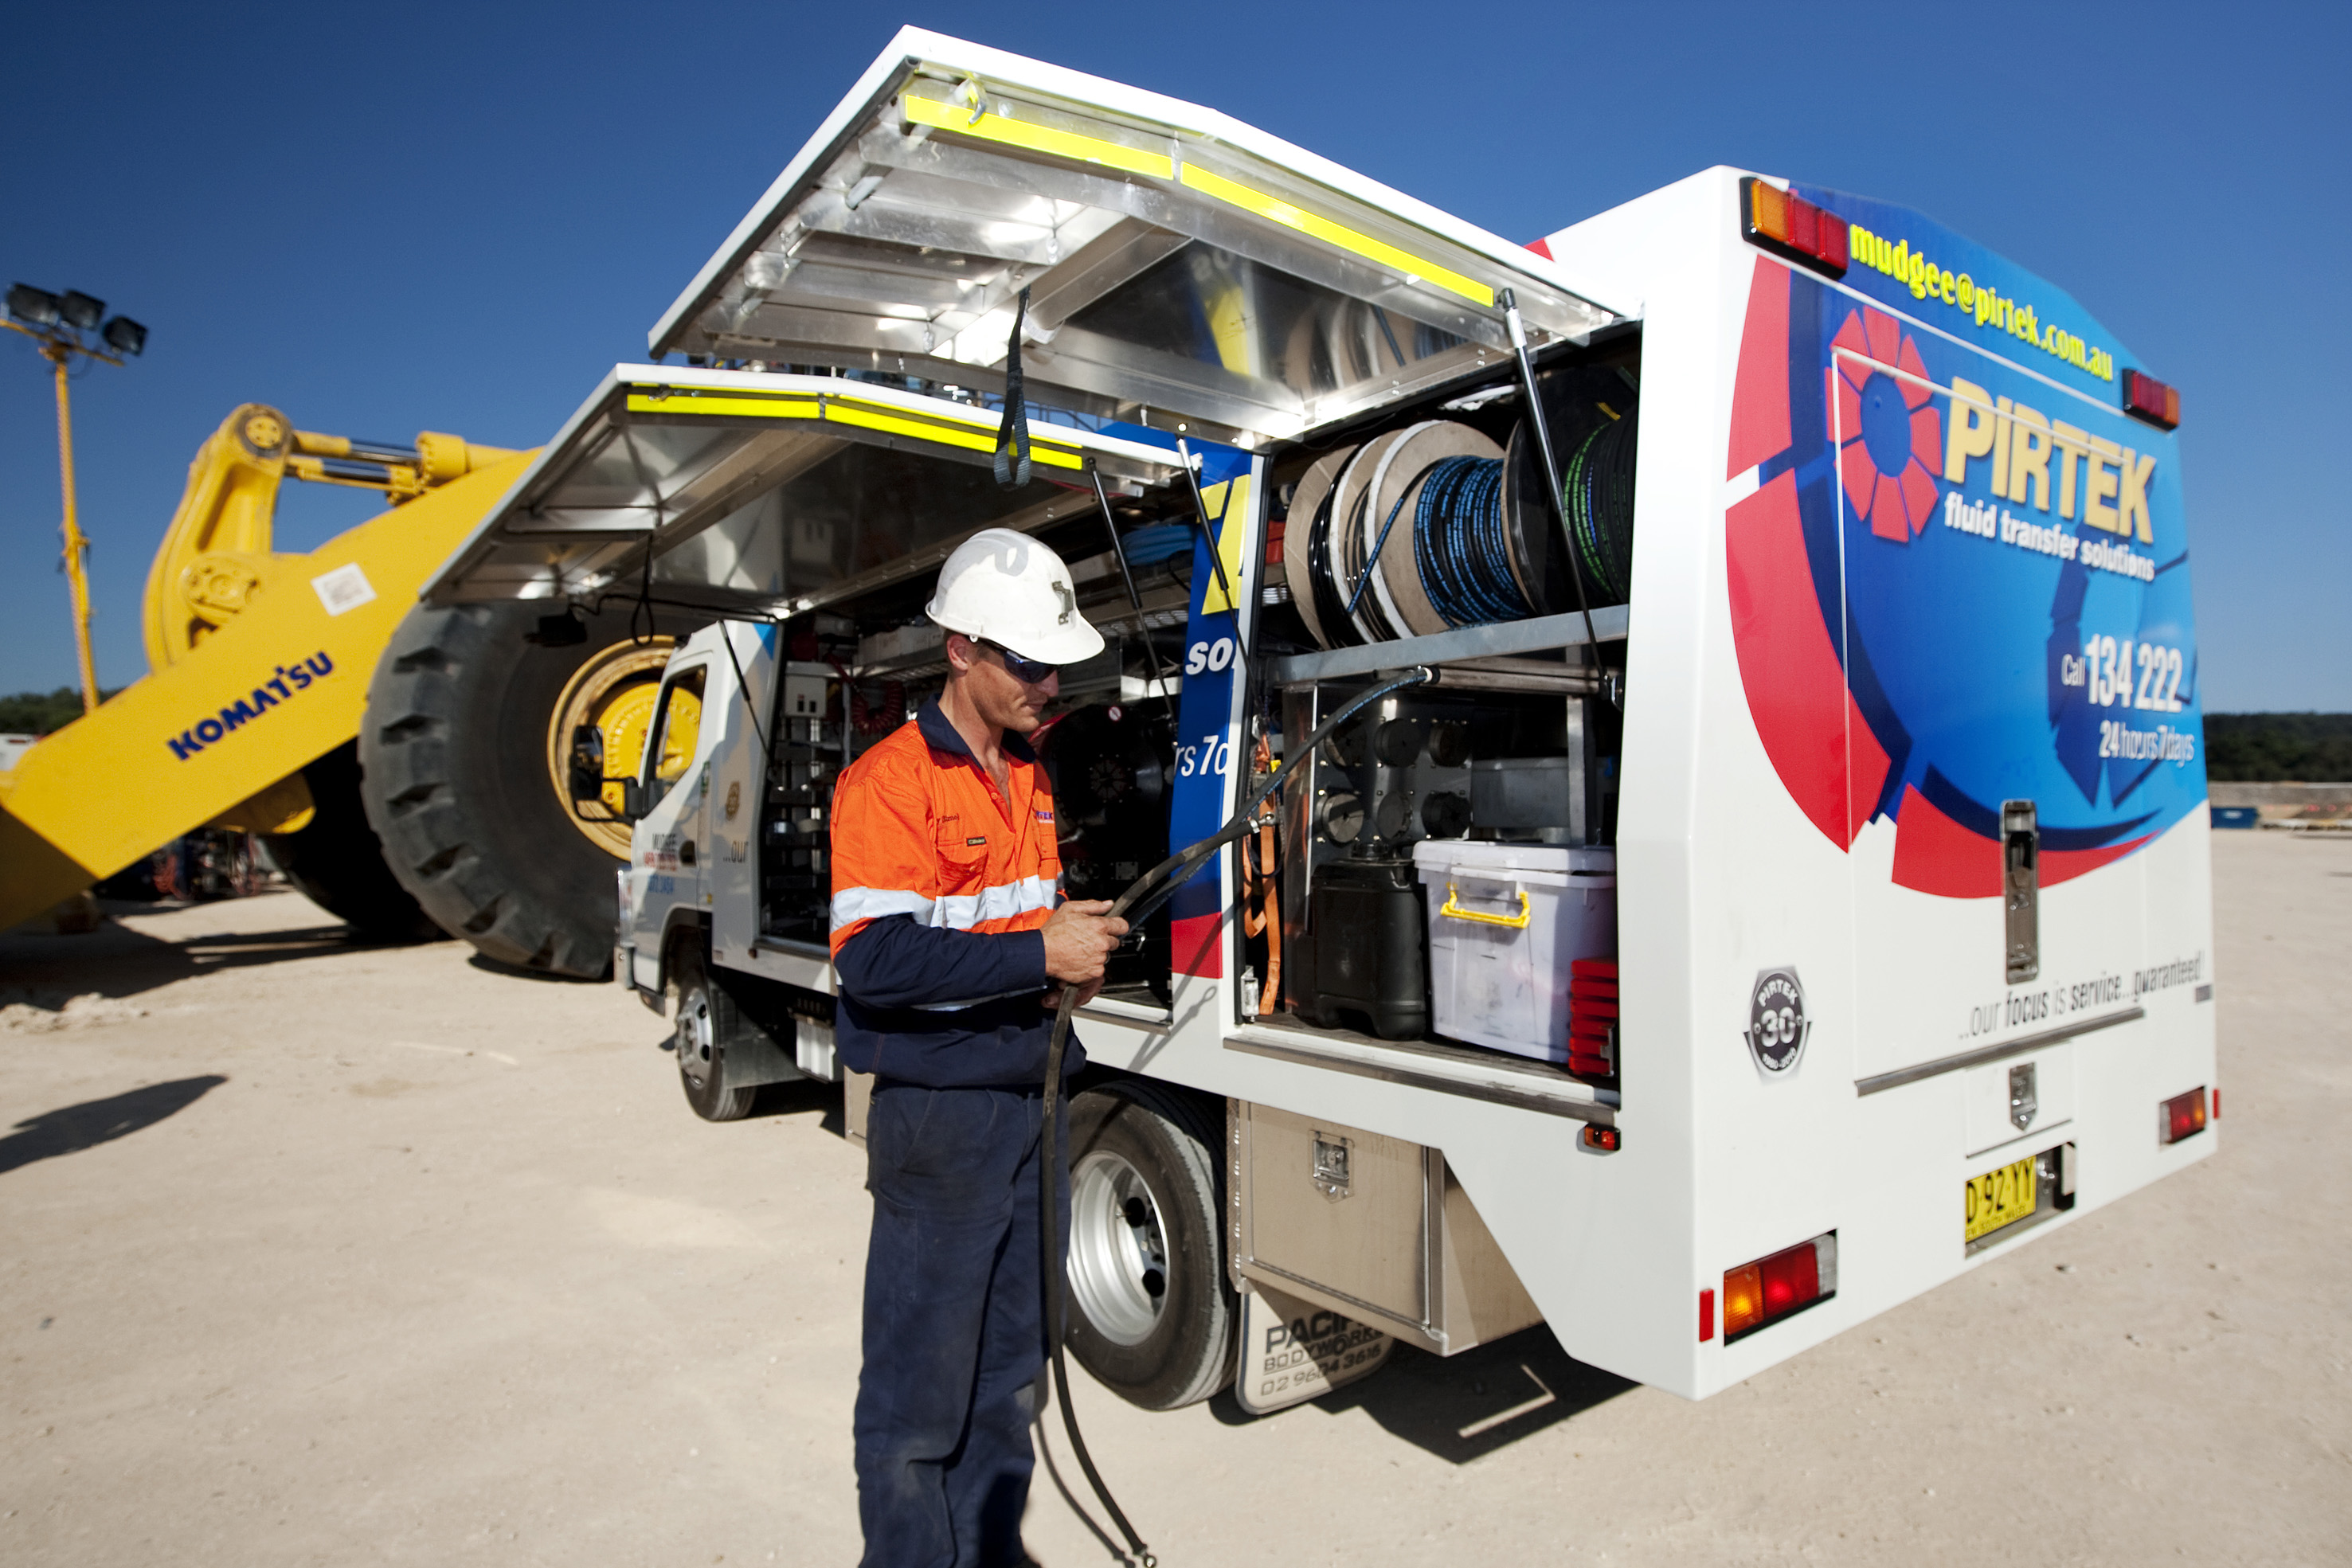 Pirtek Franchise Available - Shepparton